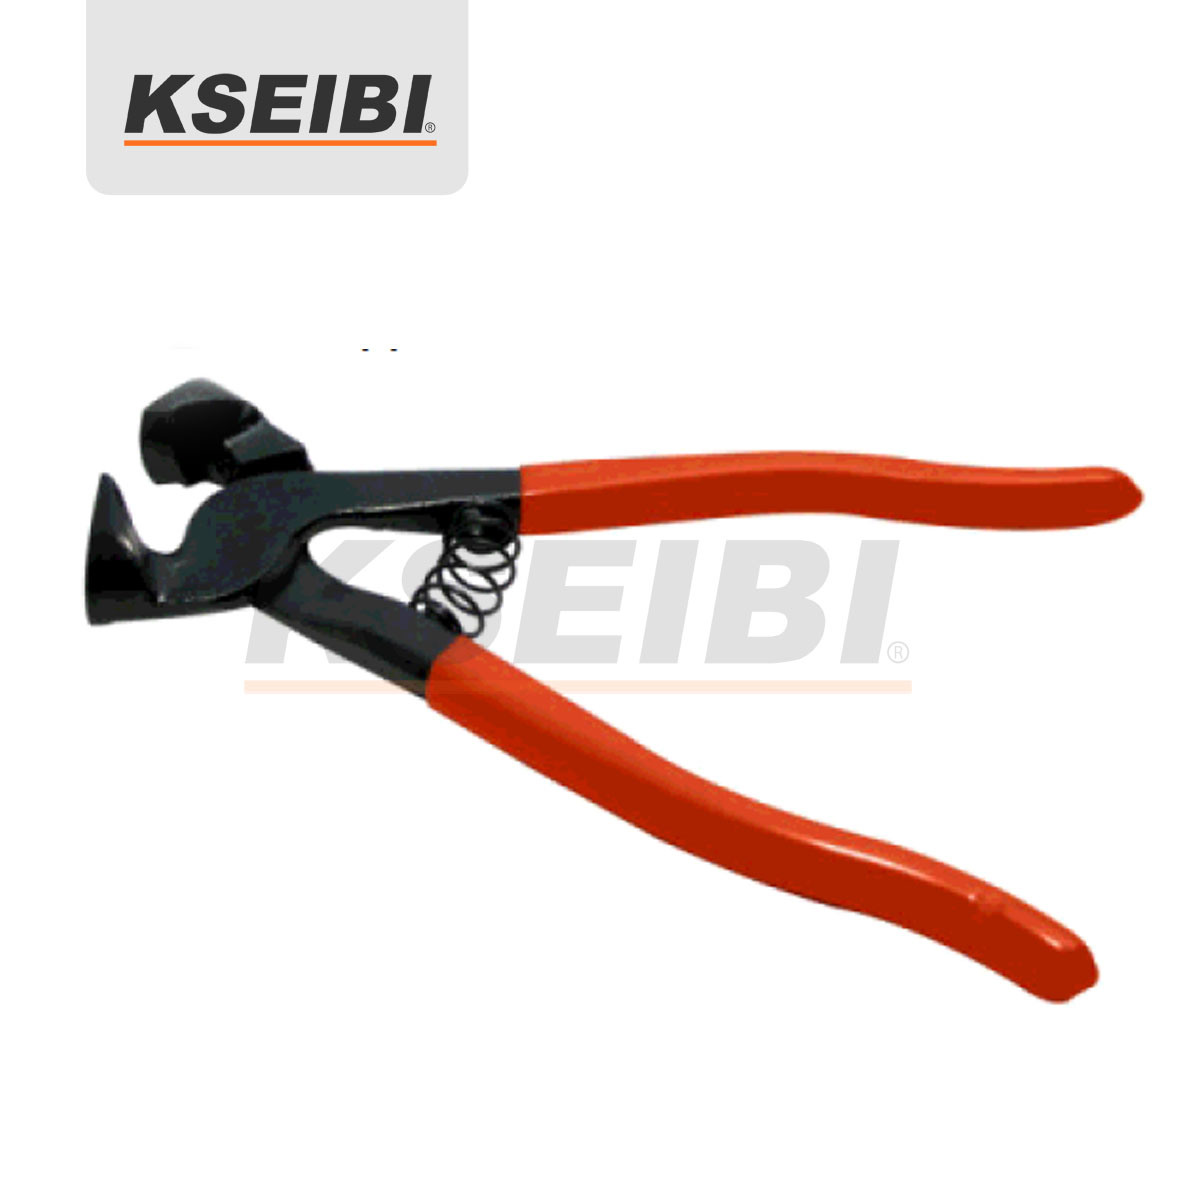 Kseibi -Hand Tools Tile Ceramic Nipper with PVC Handle